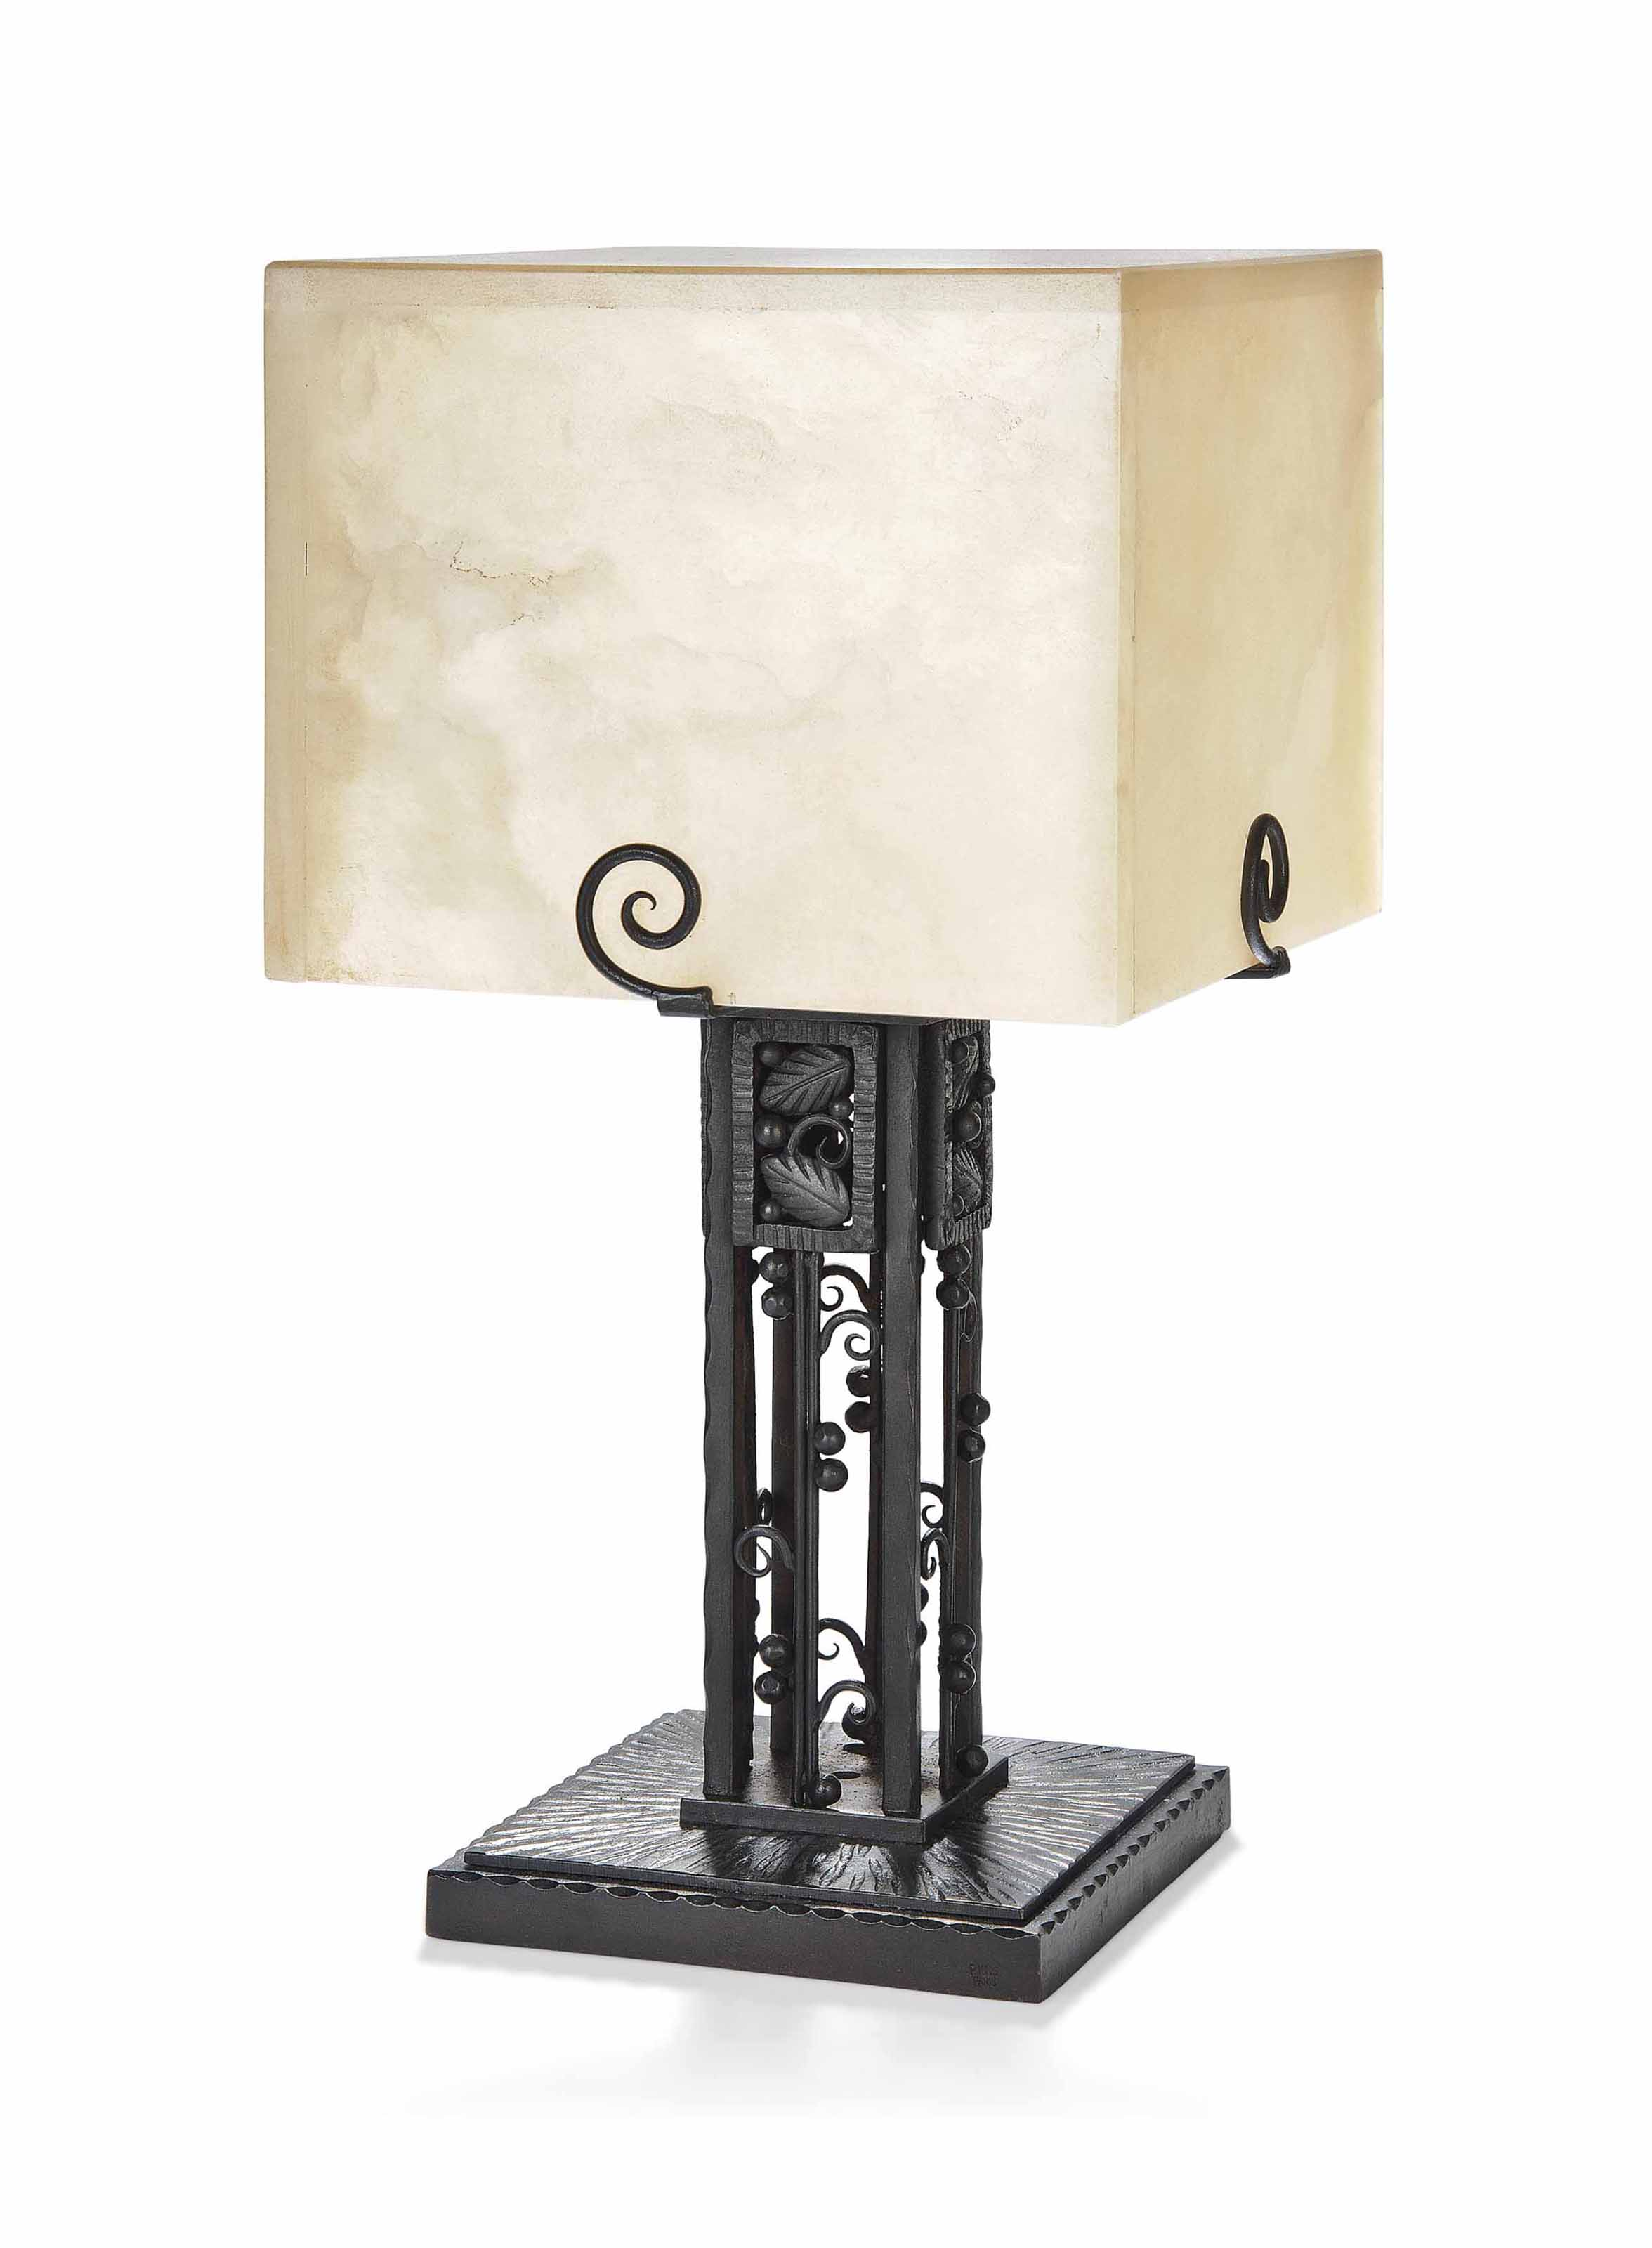 A PAUL KISS (1885-1962) ART DECO WROUGHT-IRON AND ALABASTER TABLE LAMP